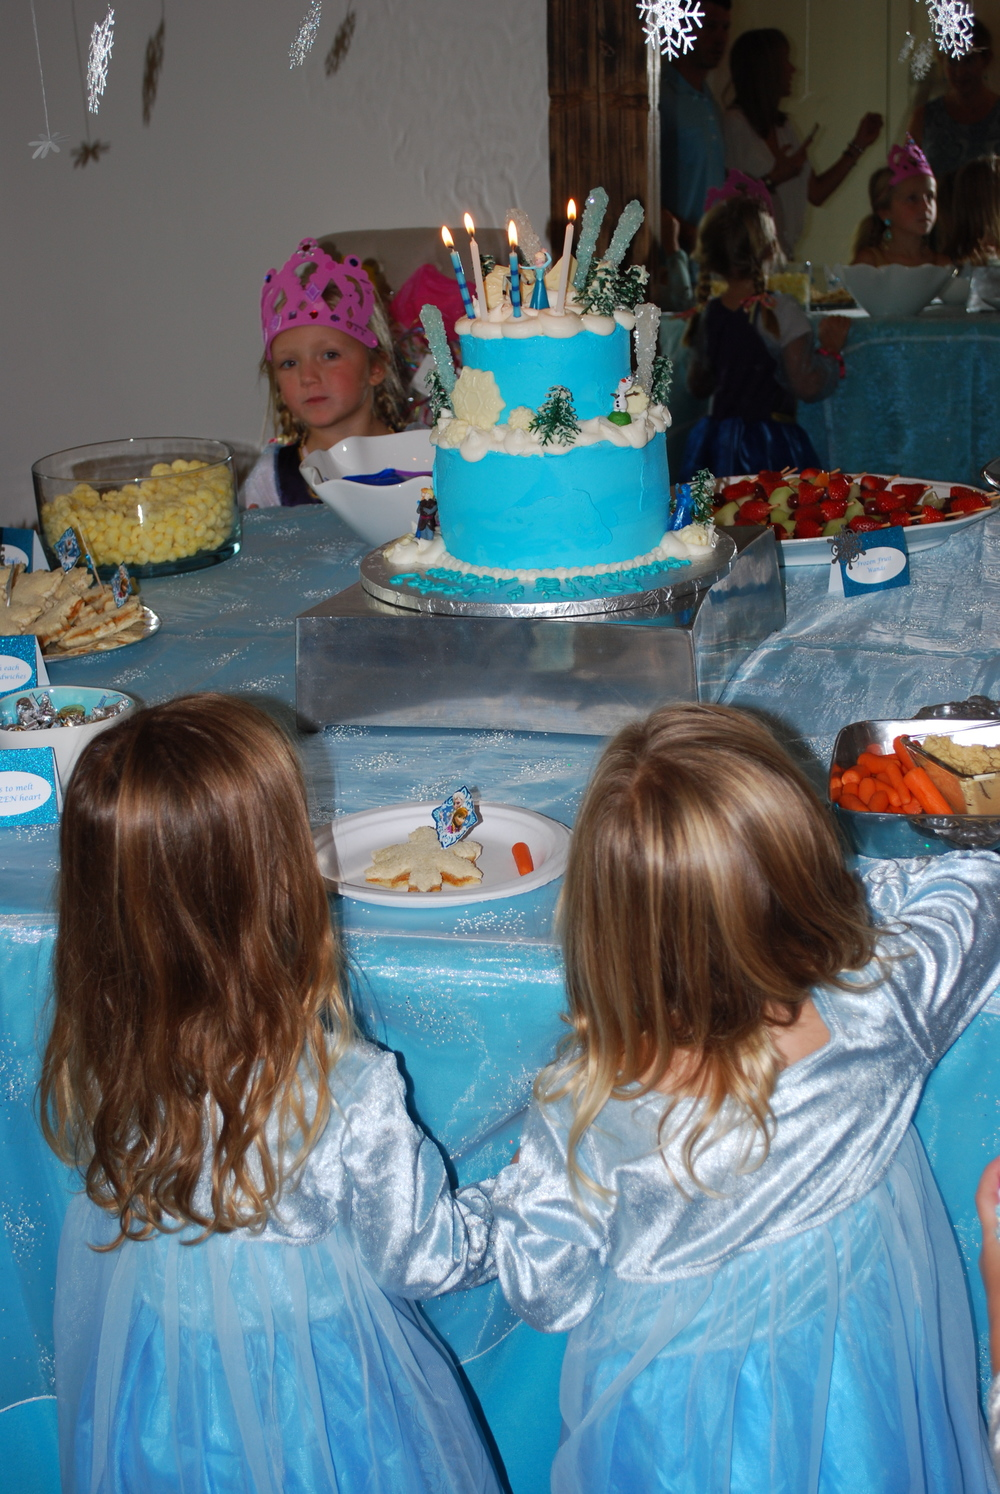 The girls were so excited about the cake!